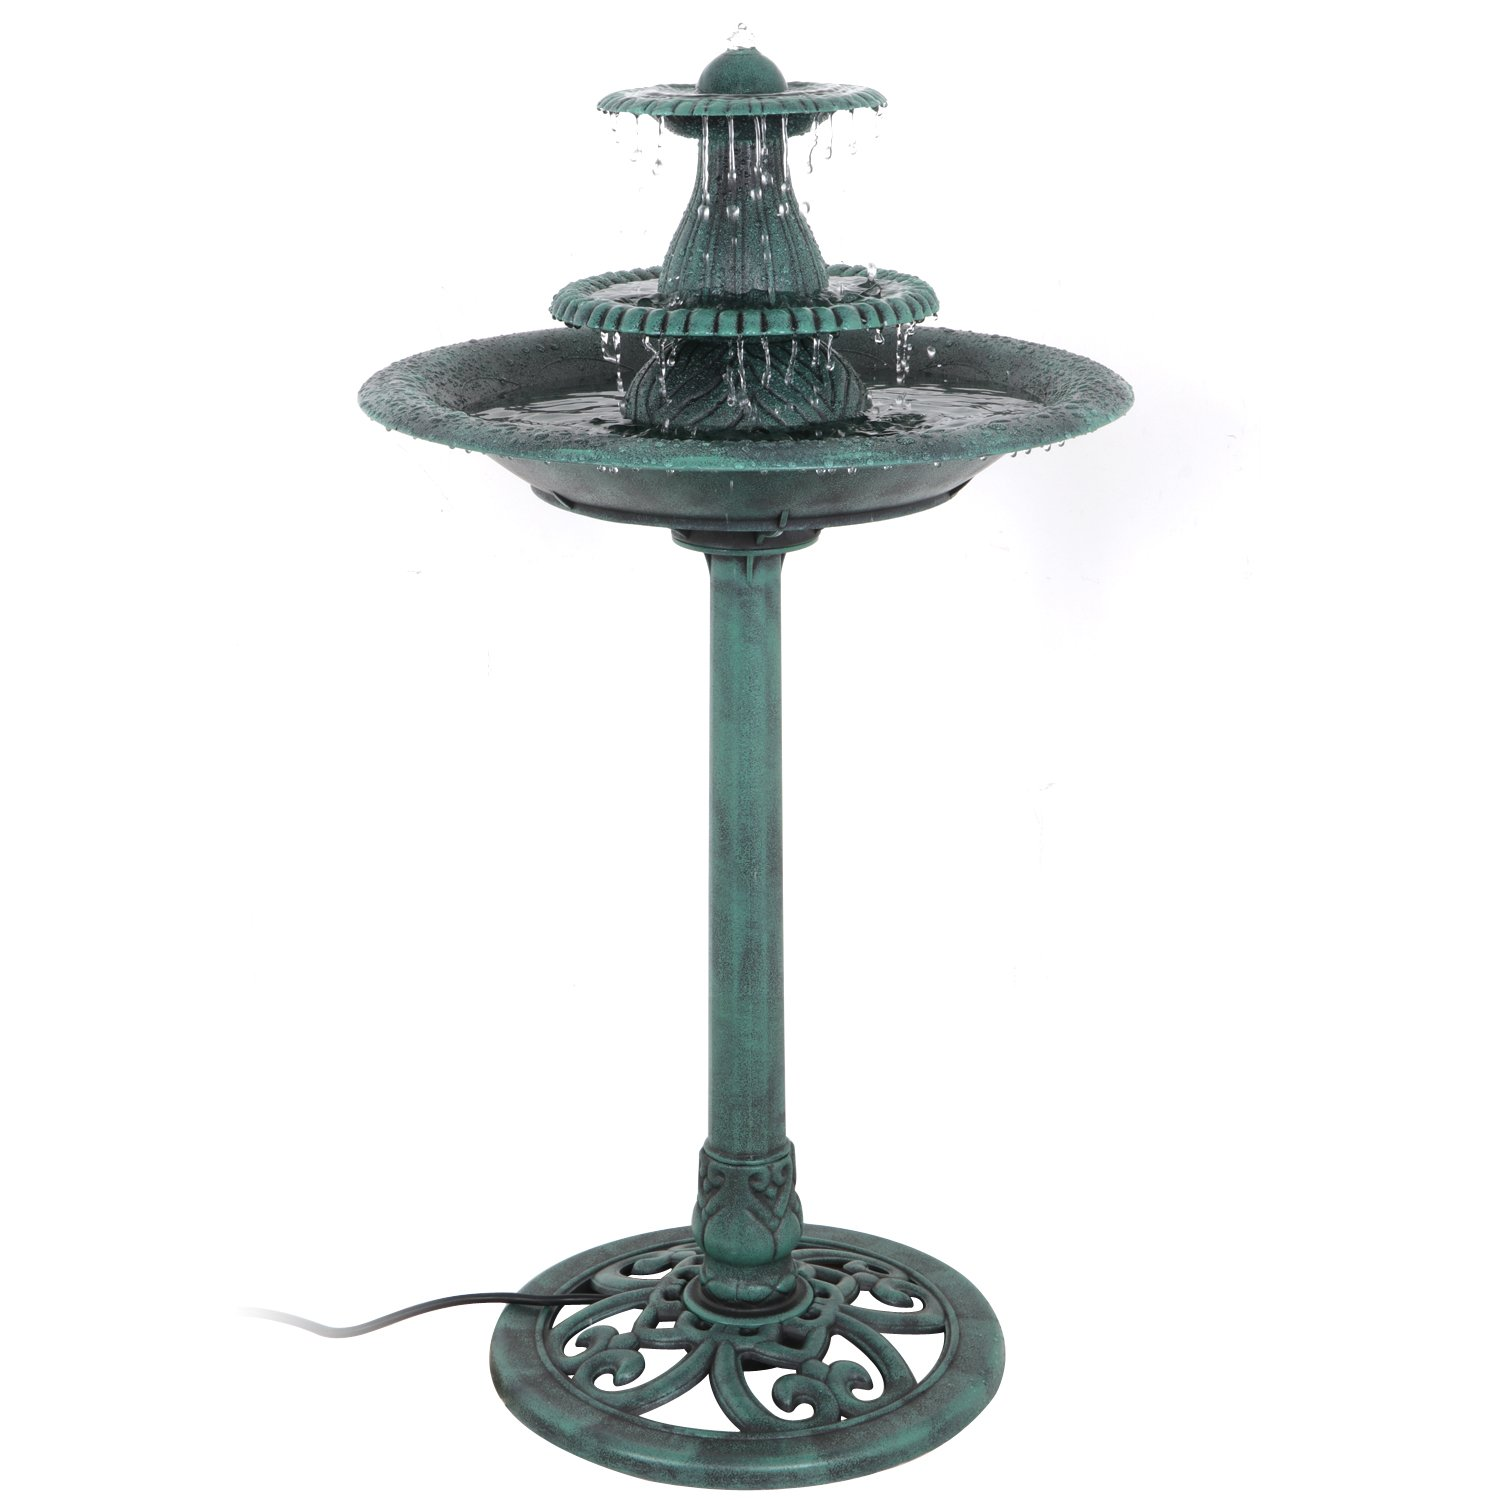 ZENY Birdbath 32 Height Pedestal Bird Bath Antique Outdoor Garden Decor Vintage Yard Art (Green w/Fountain)